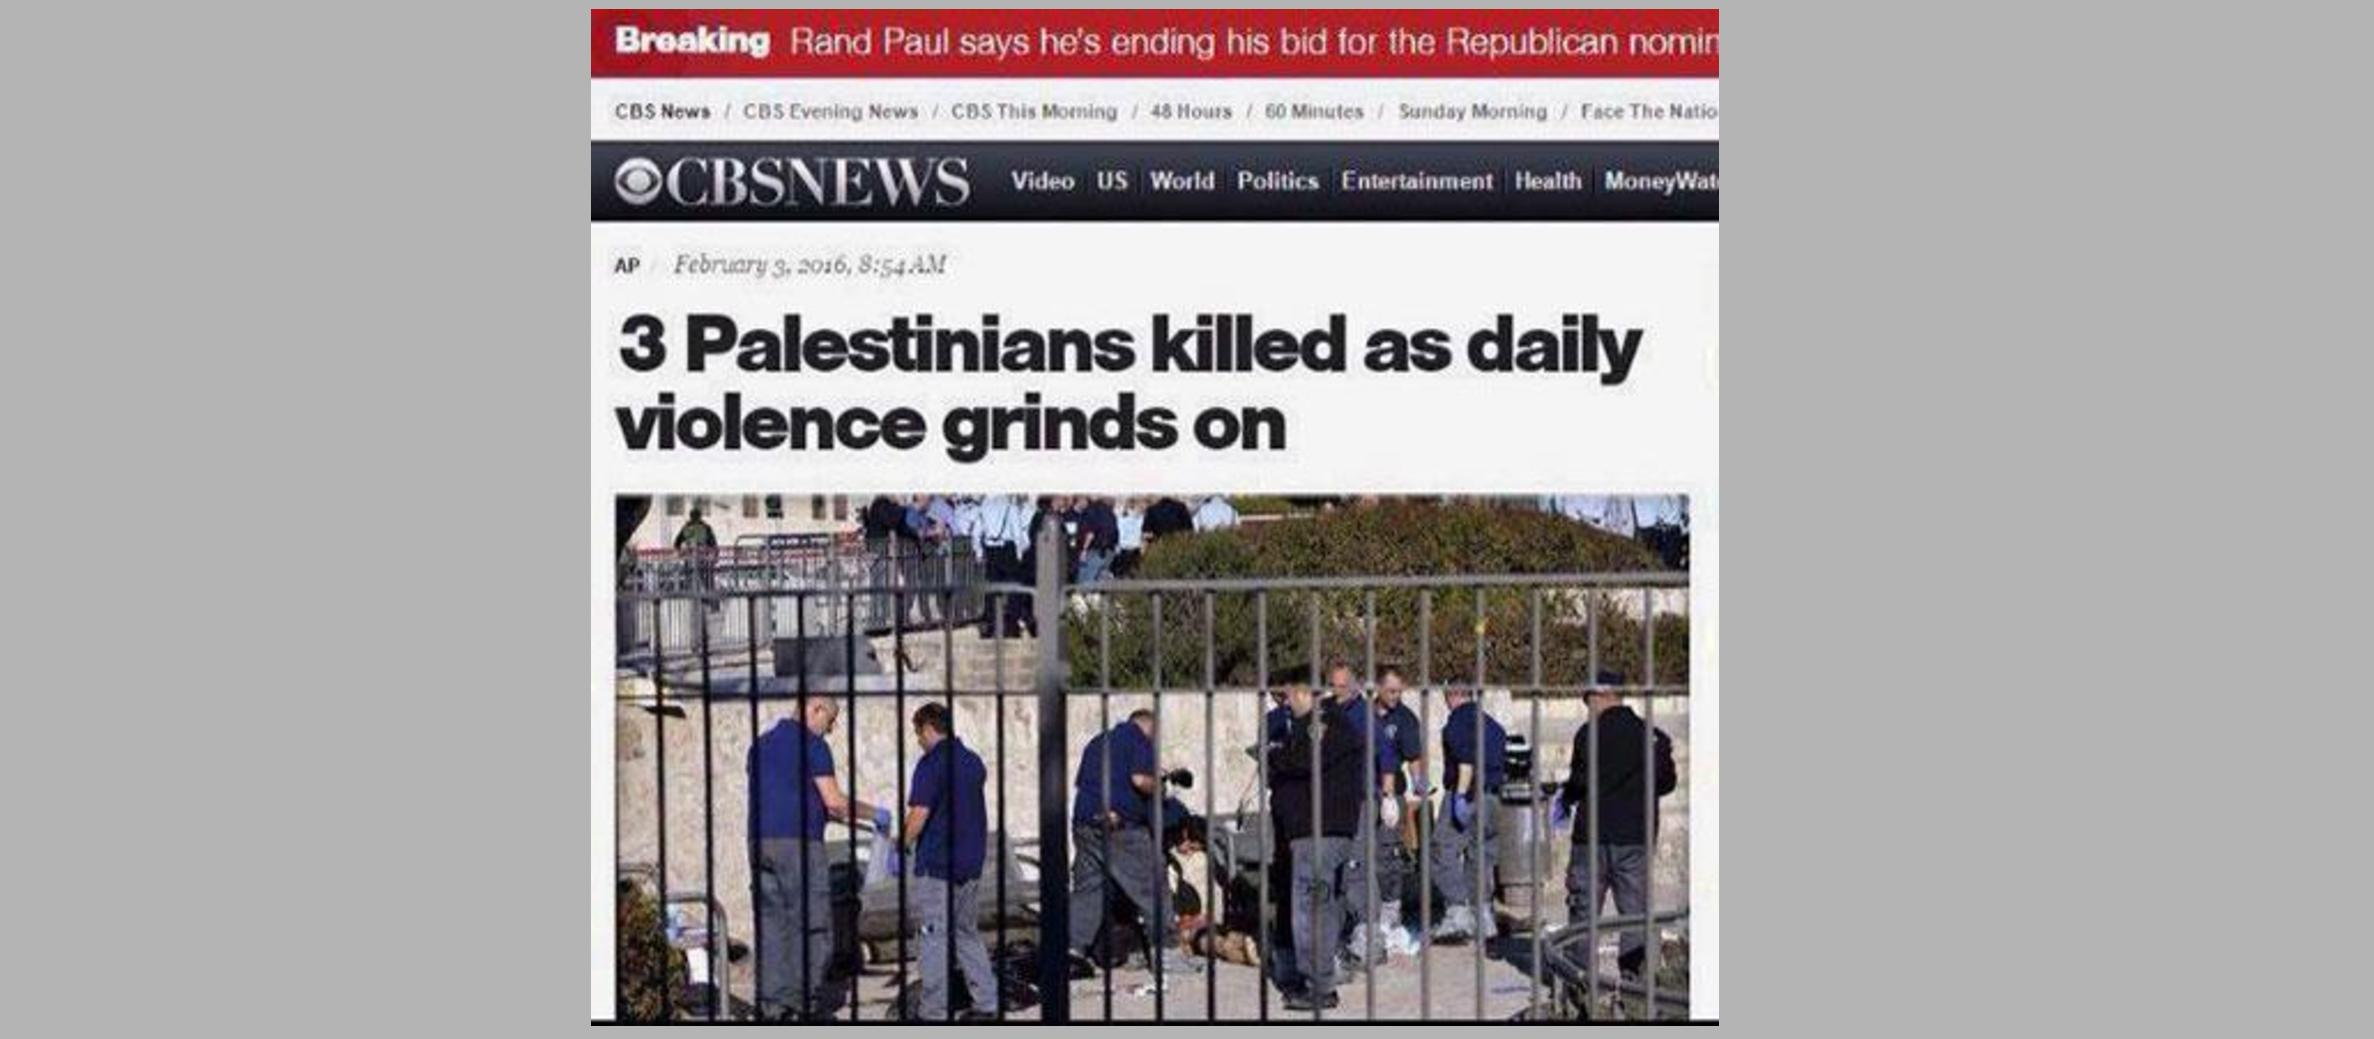 Shocking news headlines distorting Jerusalem terror attack